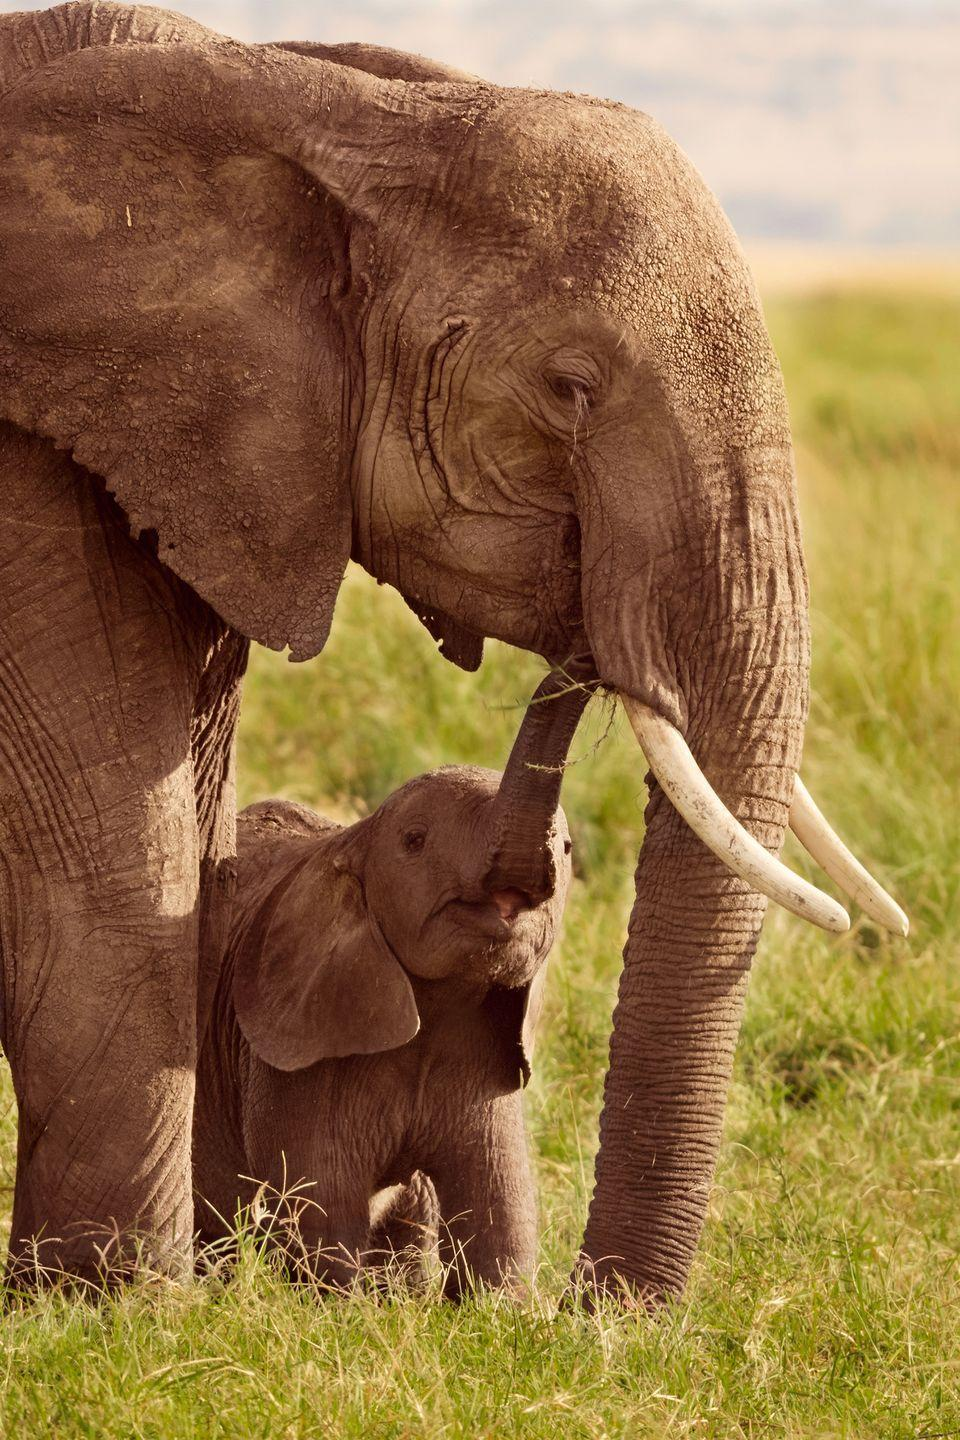 <p>Nine months is nothing: African elephants have the longest pregnancy of any mammal, which can last up to 2 years.</p>